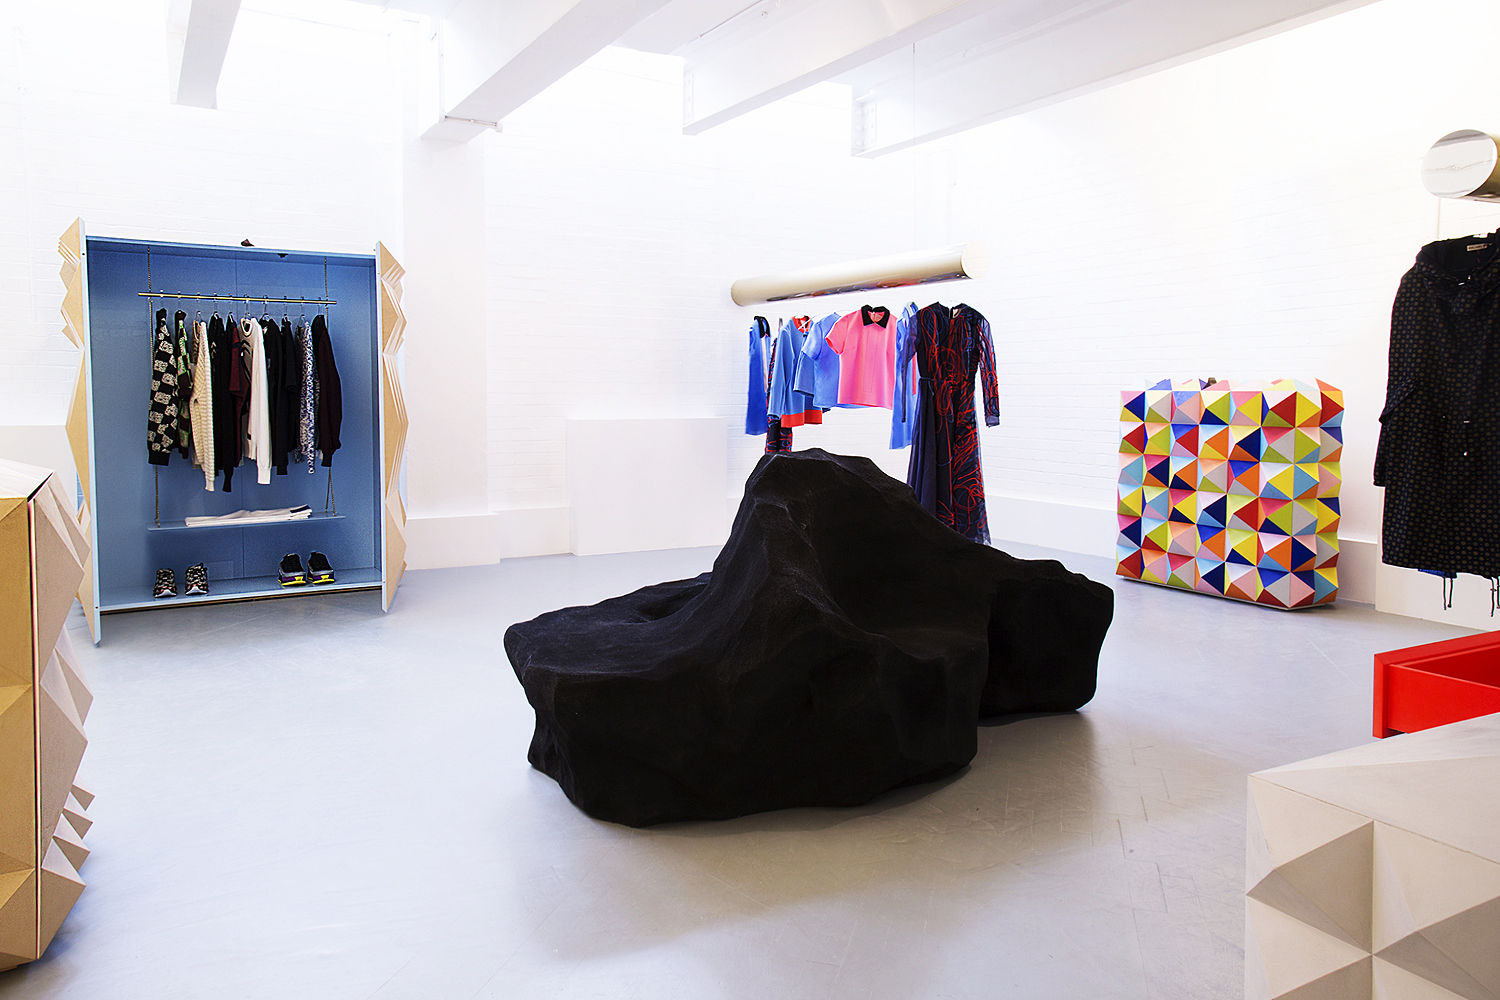 71347711f236 LN-CC - One of the Best Concept Stores Shops in Dalston